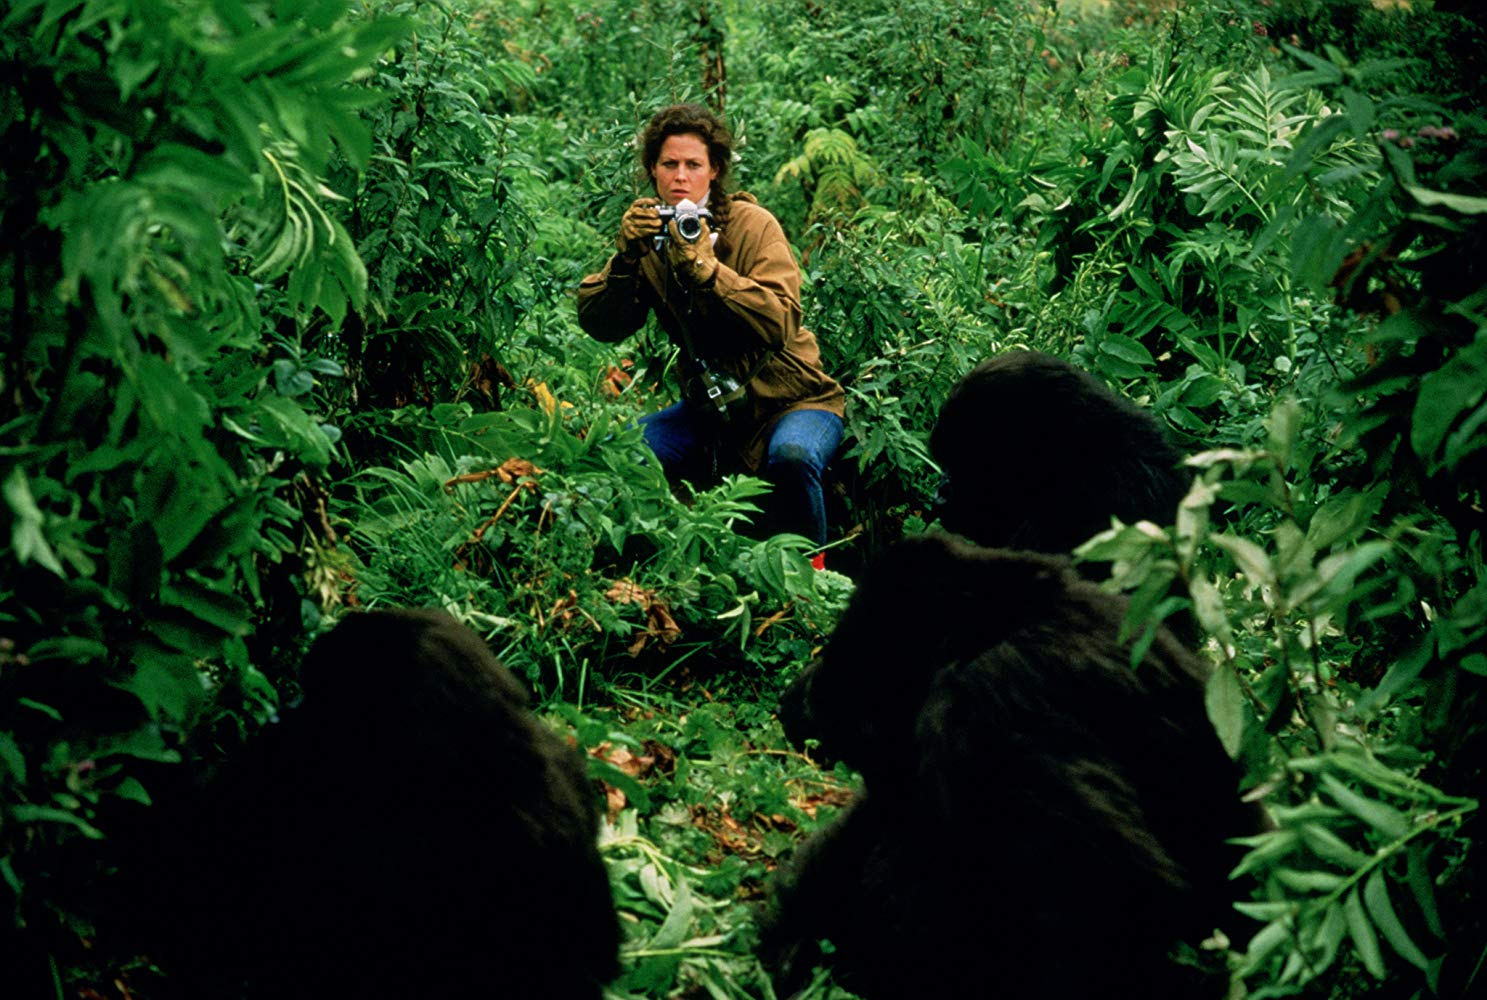 gorillas-in-the-mist-sigourney-weaver-1